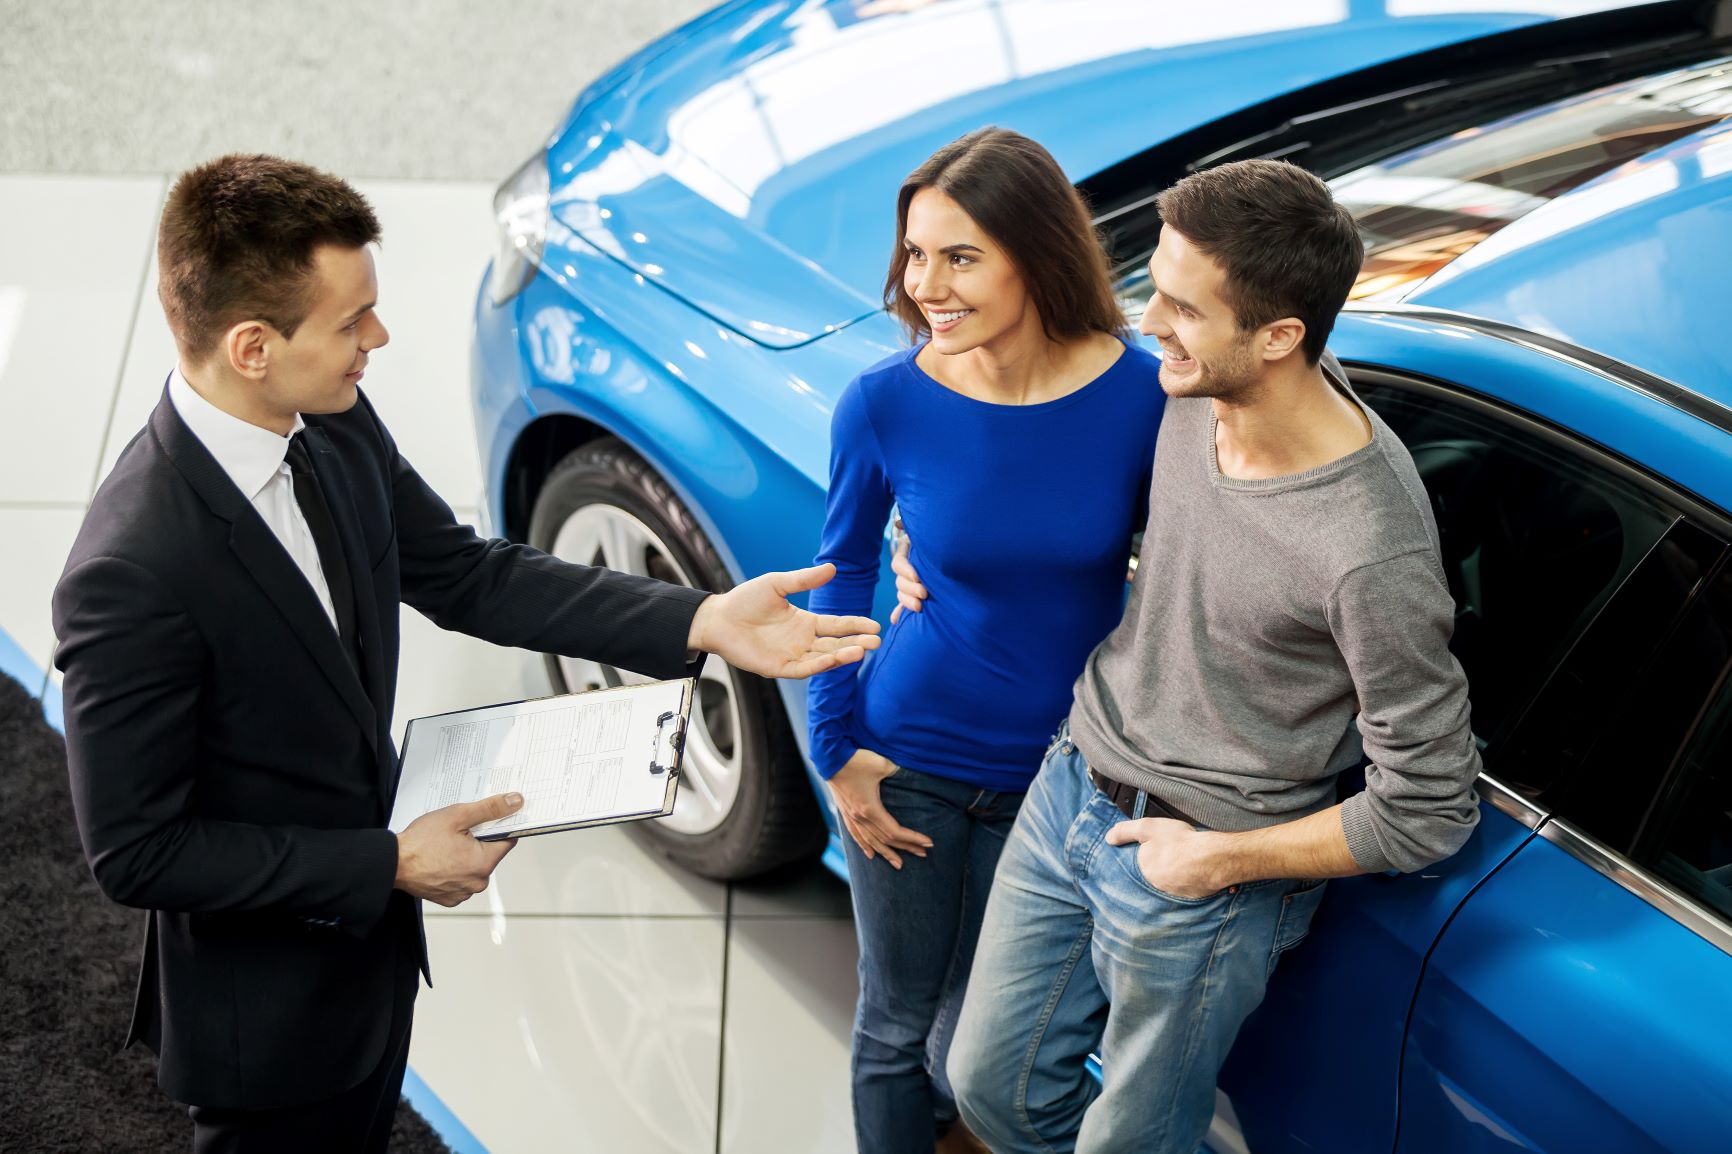 couple talking to car salesman in front of blue car